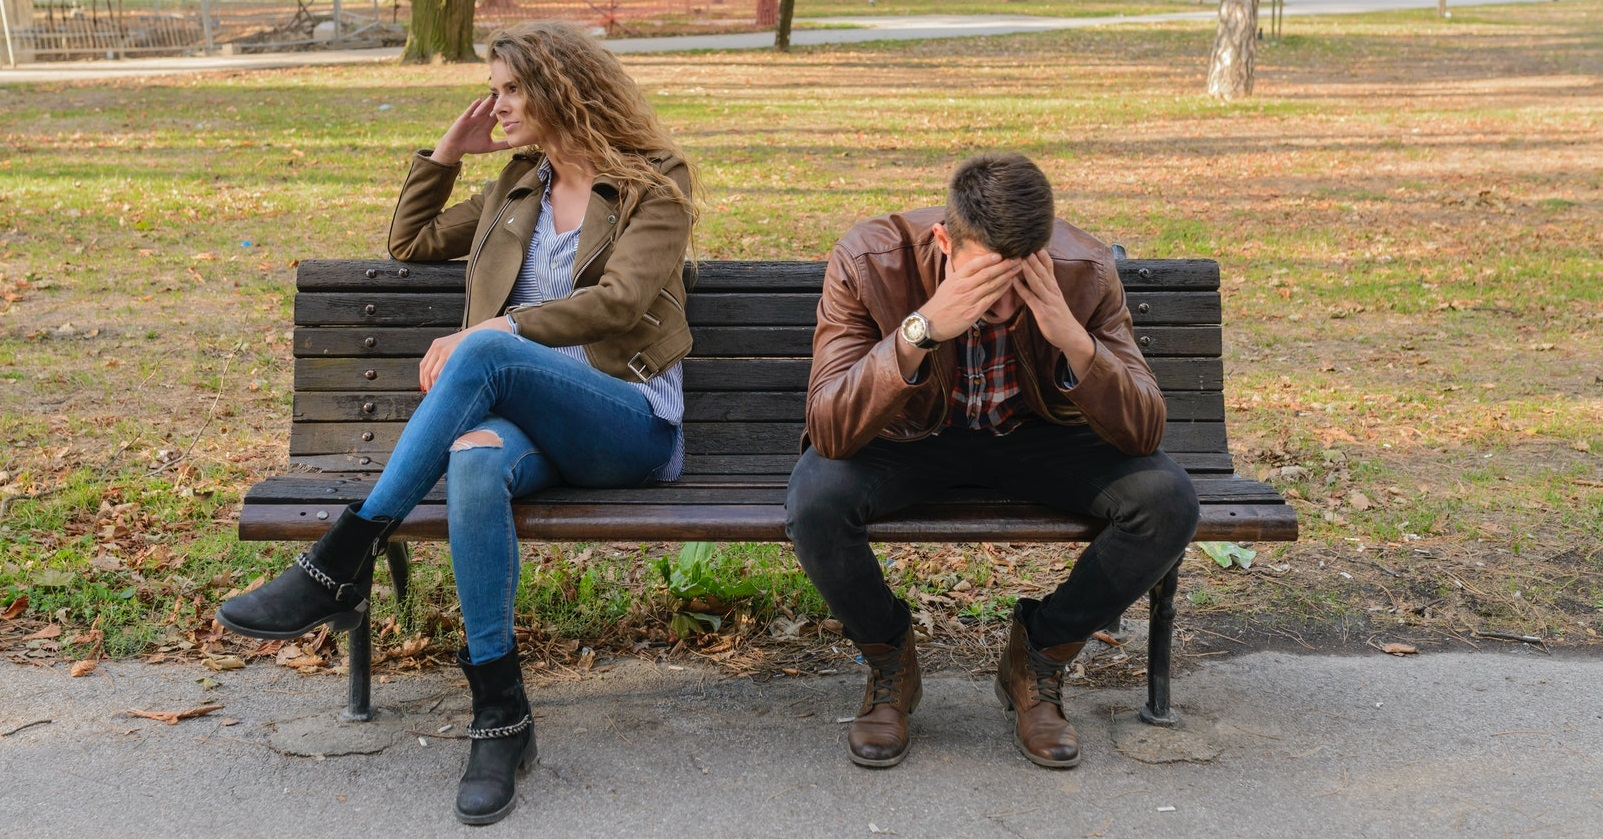 Two people sitting on park bench not talking